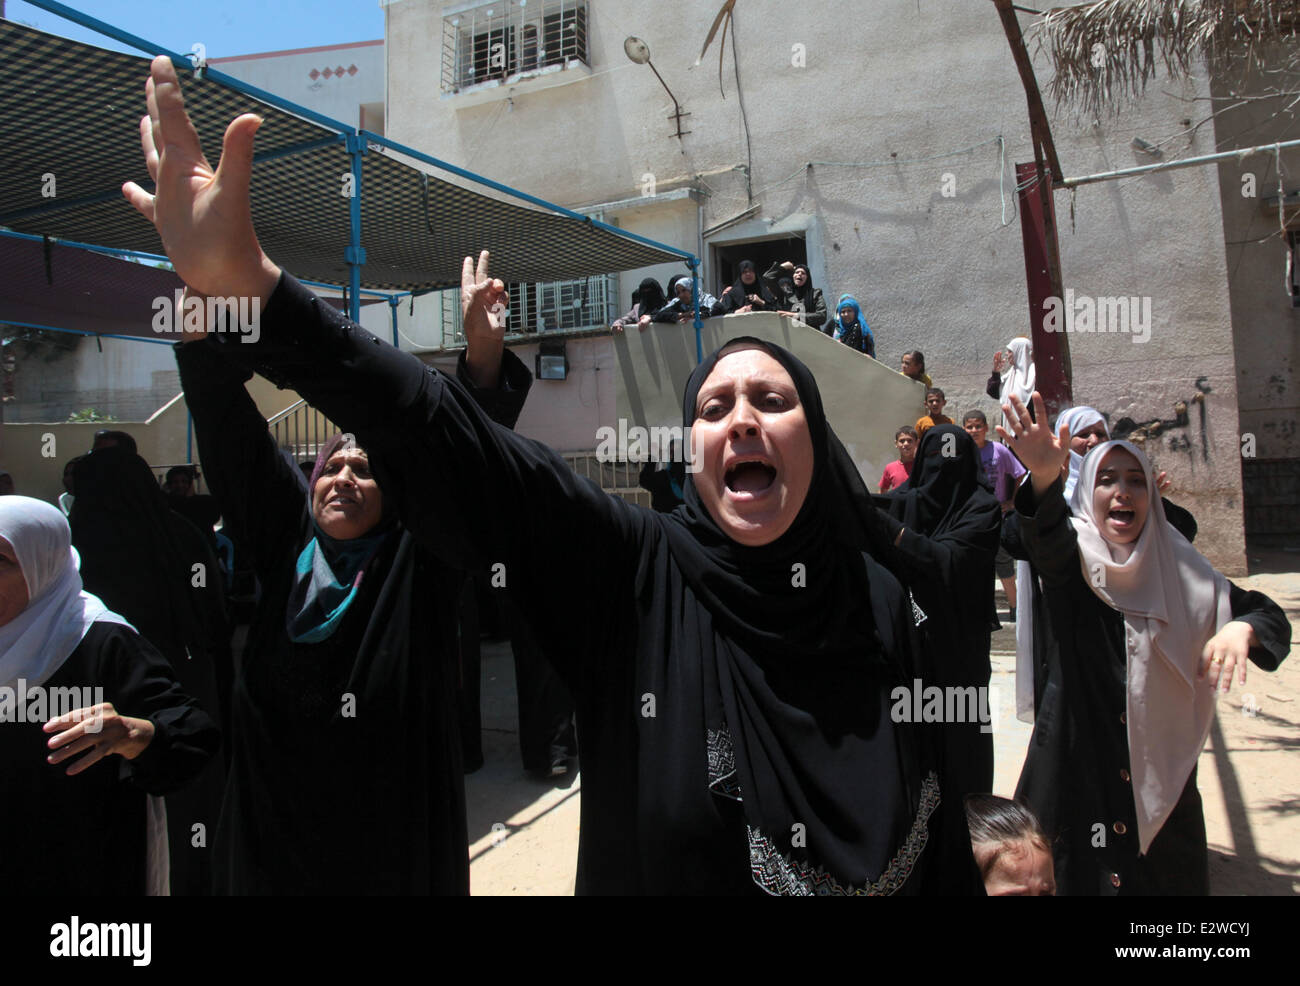 Gaza City, Gaza Strip. 21st June, 2014. Relatives of Palestinian Ahmed Ayad, mourn during his funeral in Gaza City. - Stock Image